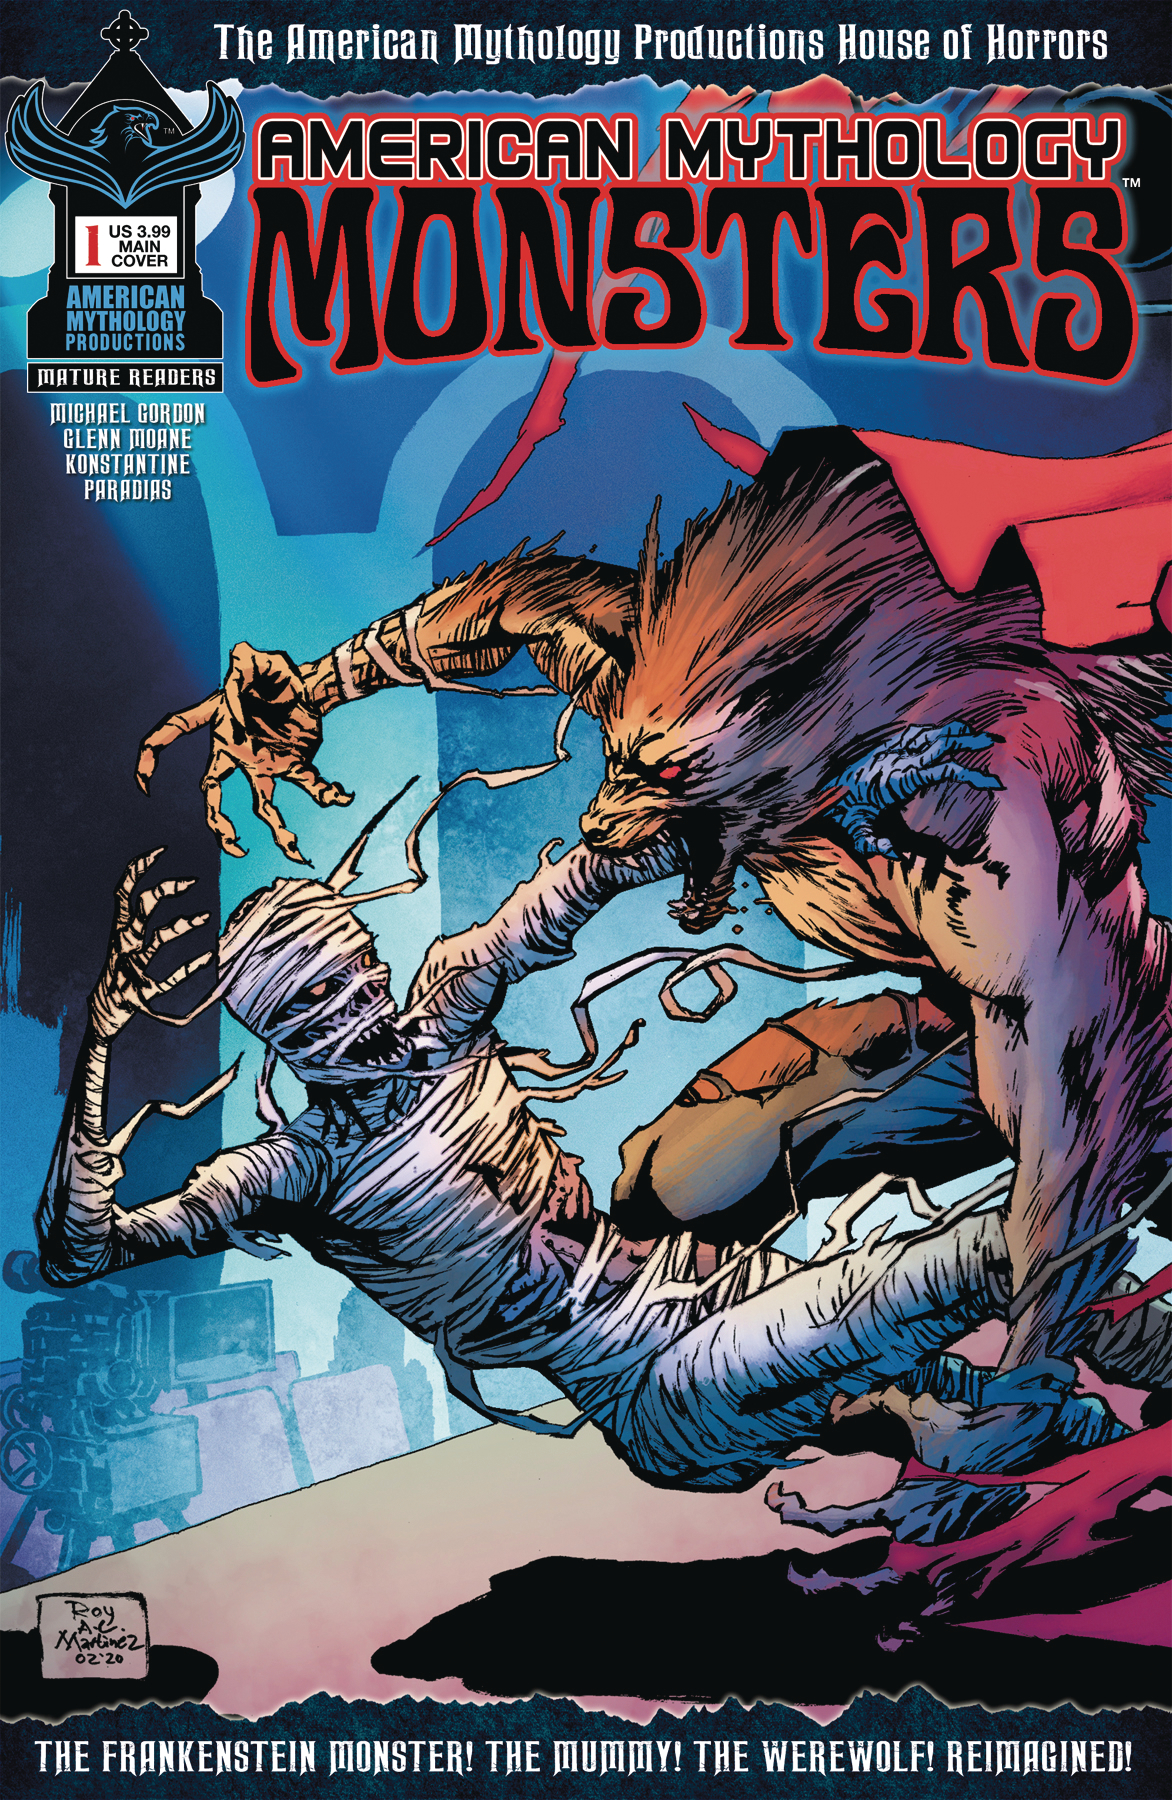 AMERICAN MYTHOLOGY MONSTERS #1 CVR A MARTINEZ (MR)